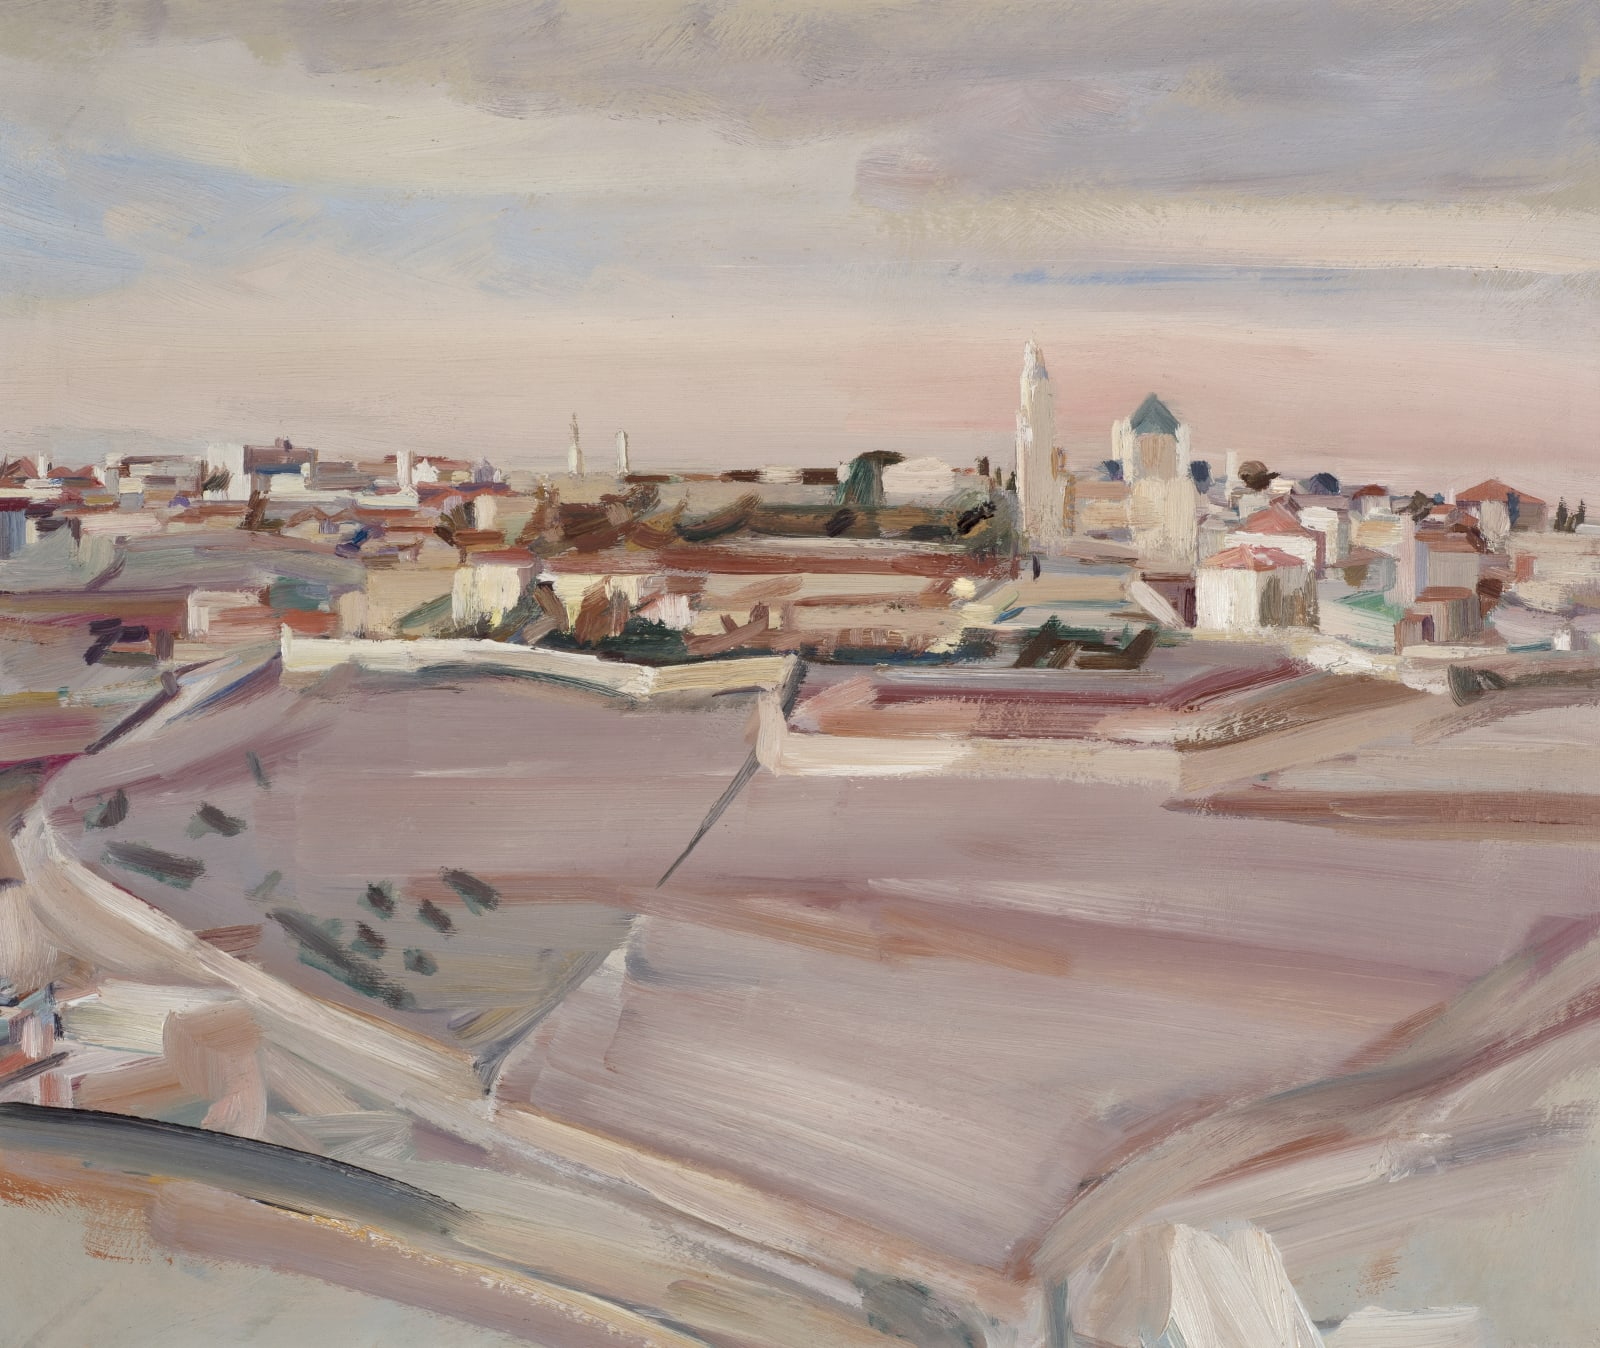 David Bomberg (1890-1957) Mount Zion and the Church of the Dormition, Jerusalem 1923 Oil on canvas 49 x 60 cm Ben Uri Collection © David Bomberg estate